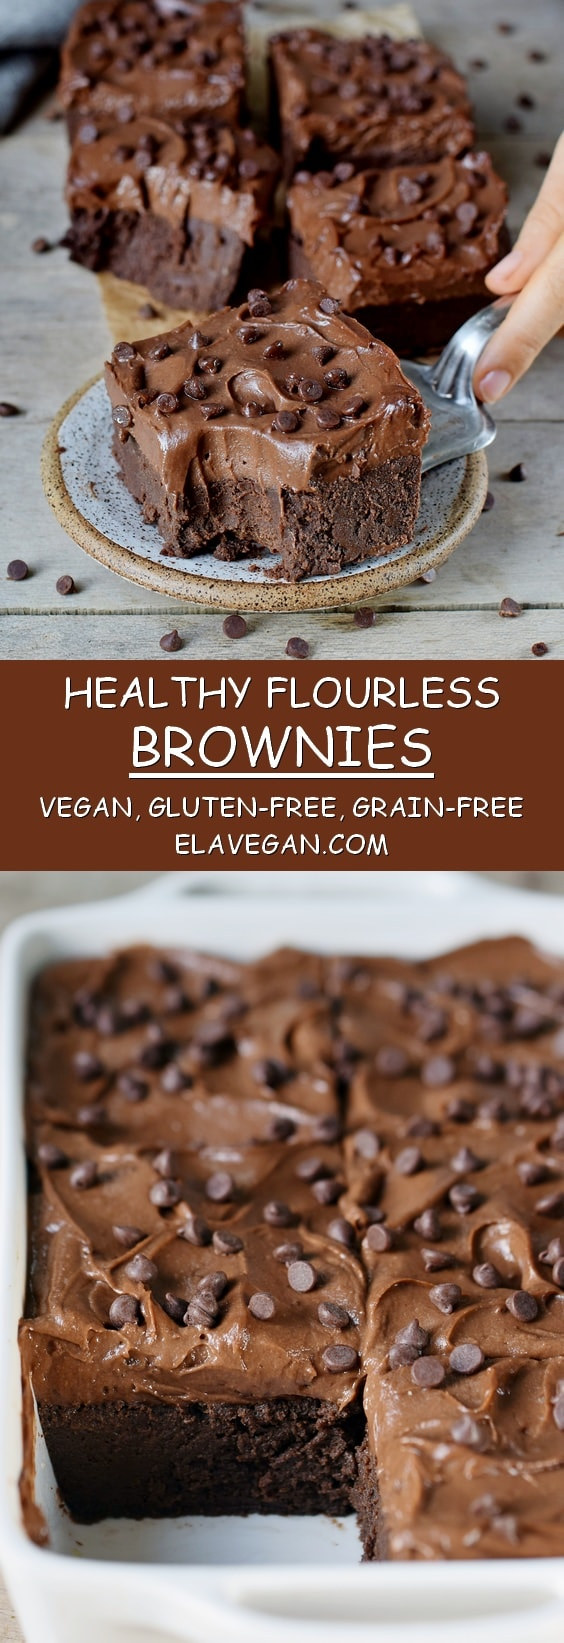 healthy flourless brownies vegan gluten-free grain-free recipe pinterest